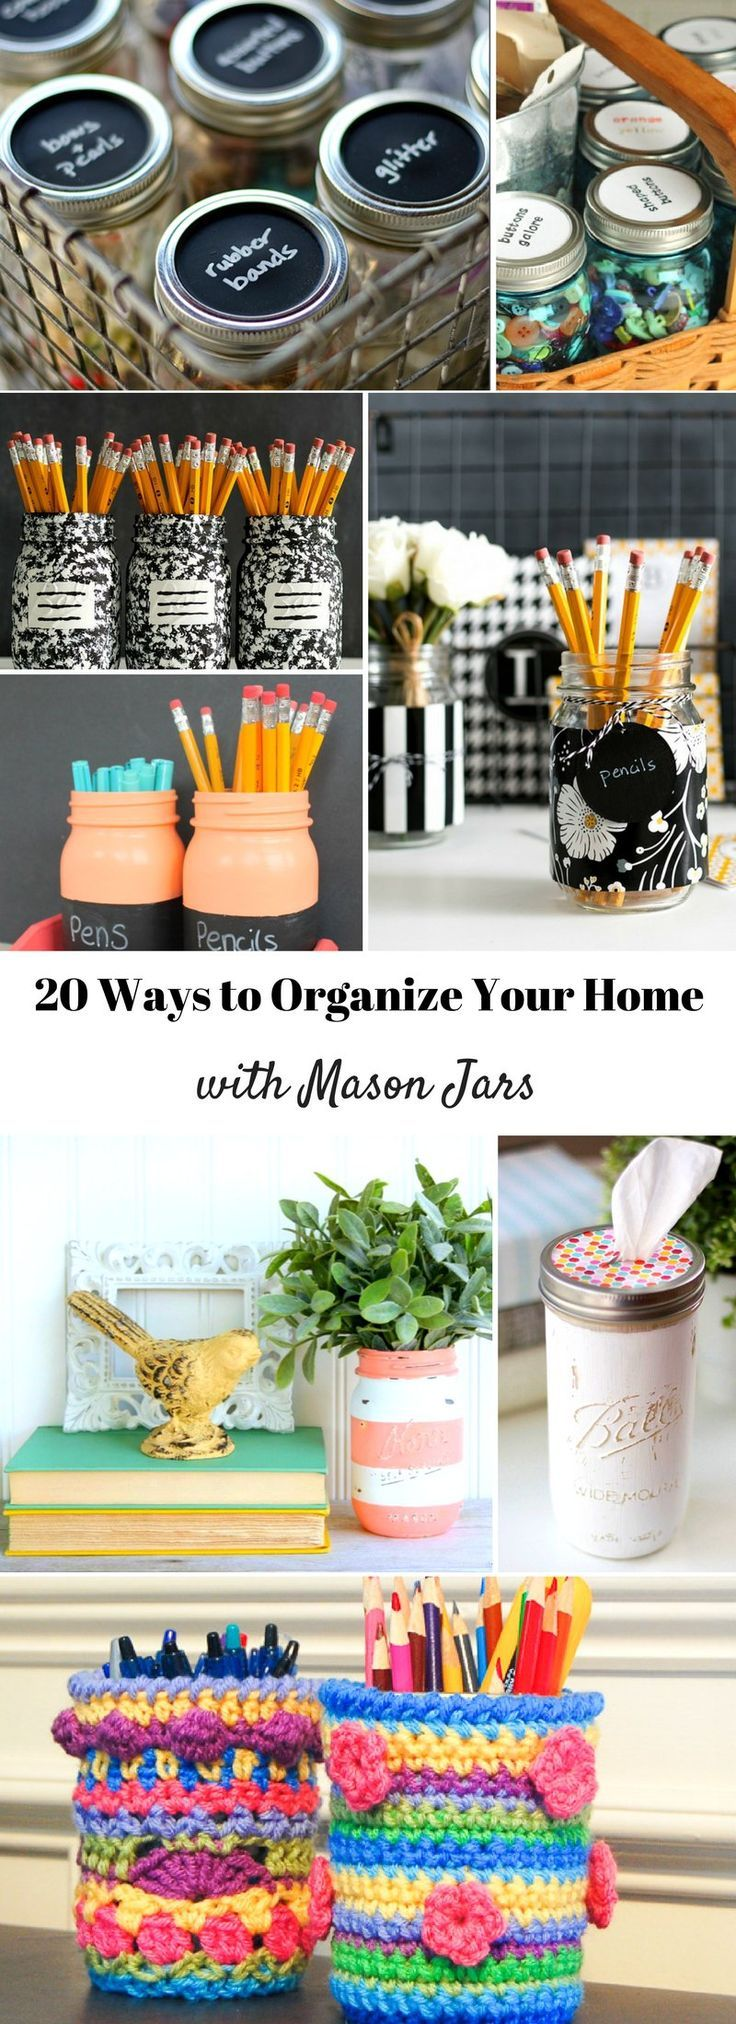 20 Ways To Organize Your Home with